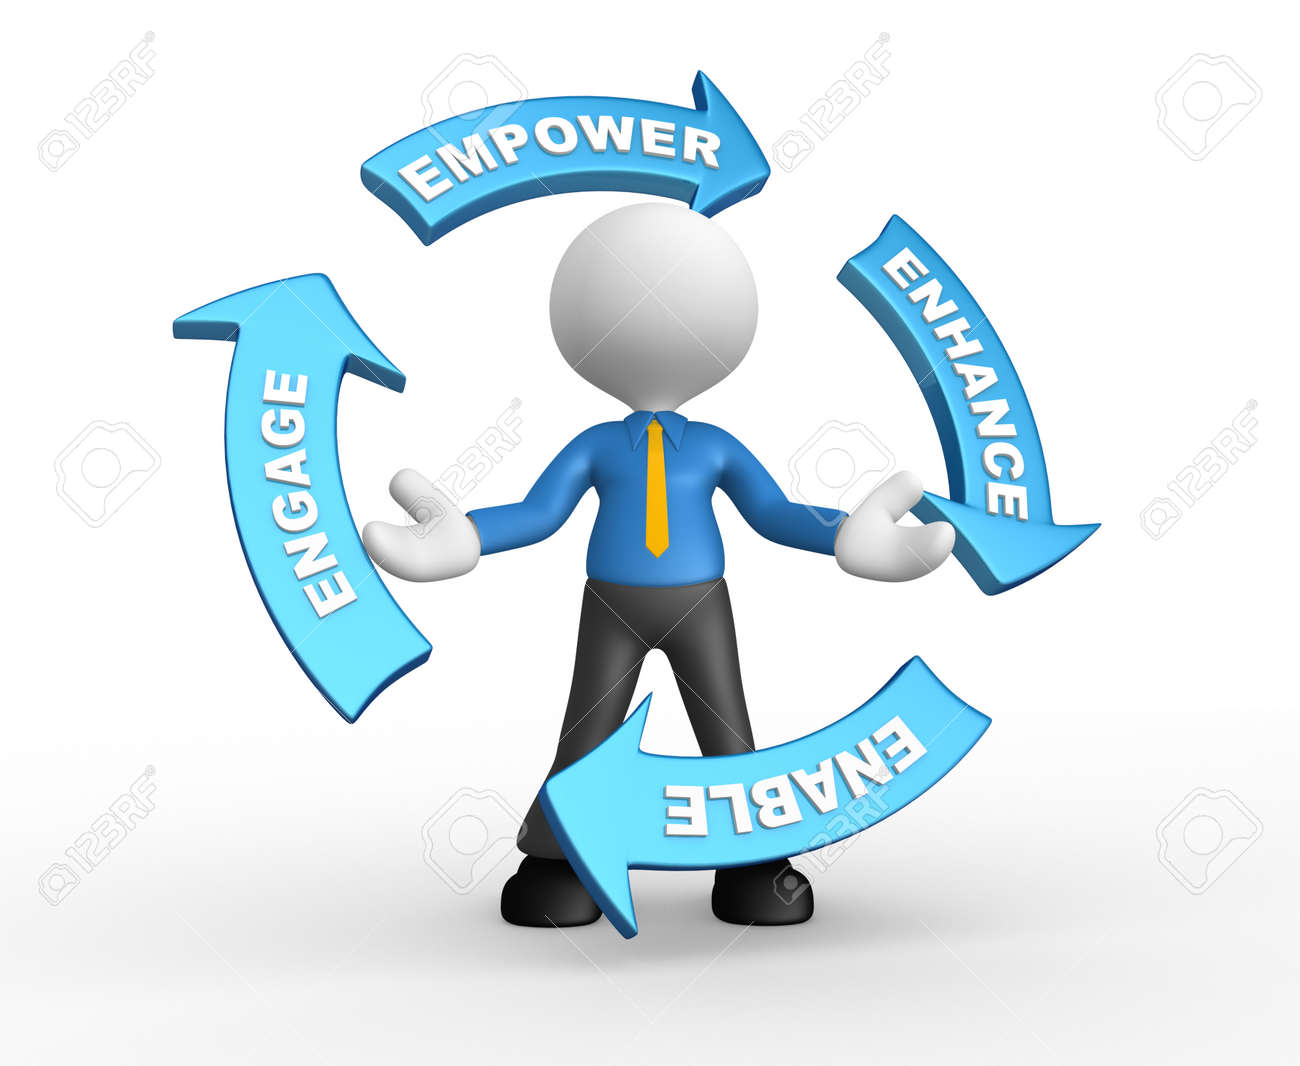 3d people - man, person with circular flow chart representing employee empowerment. Stock Photo - 24968420